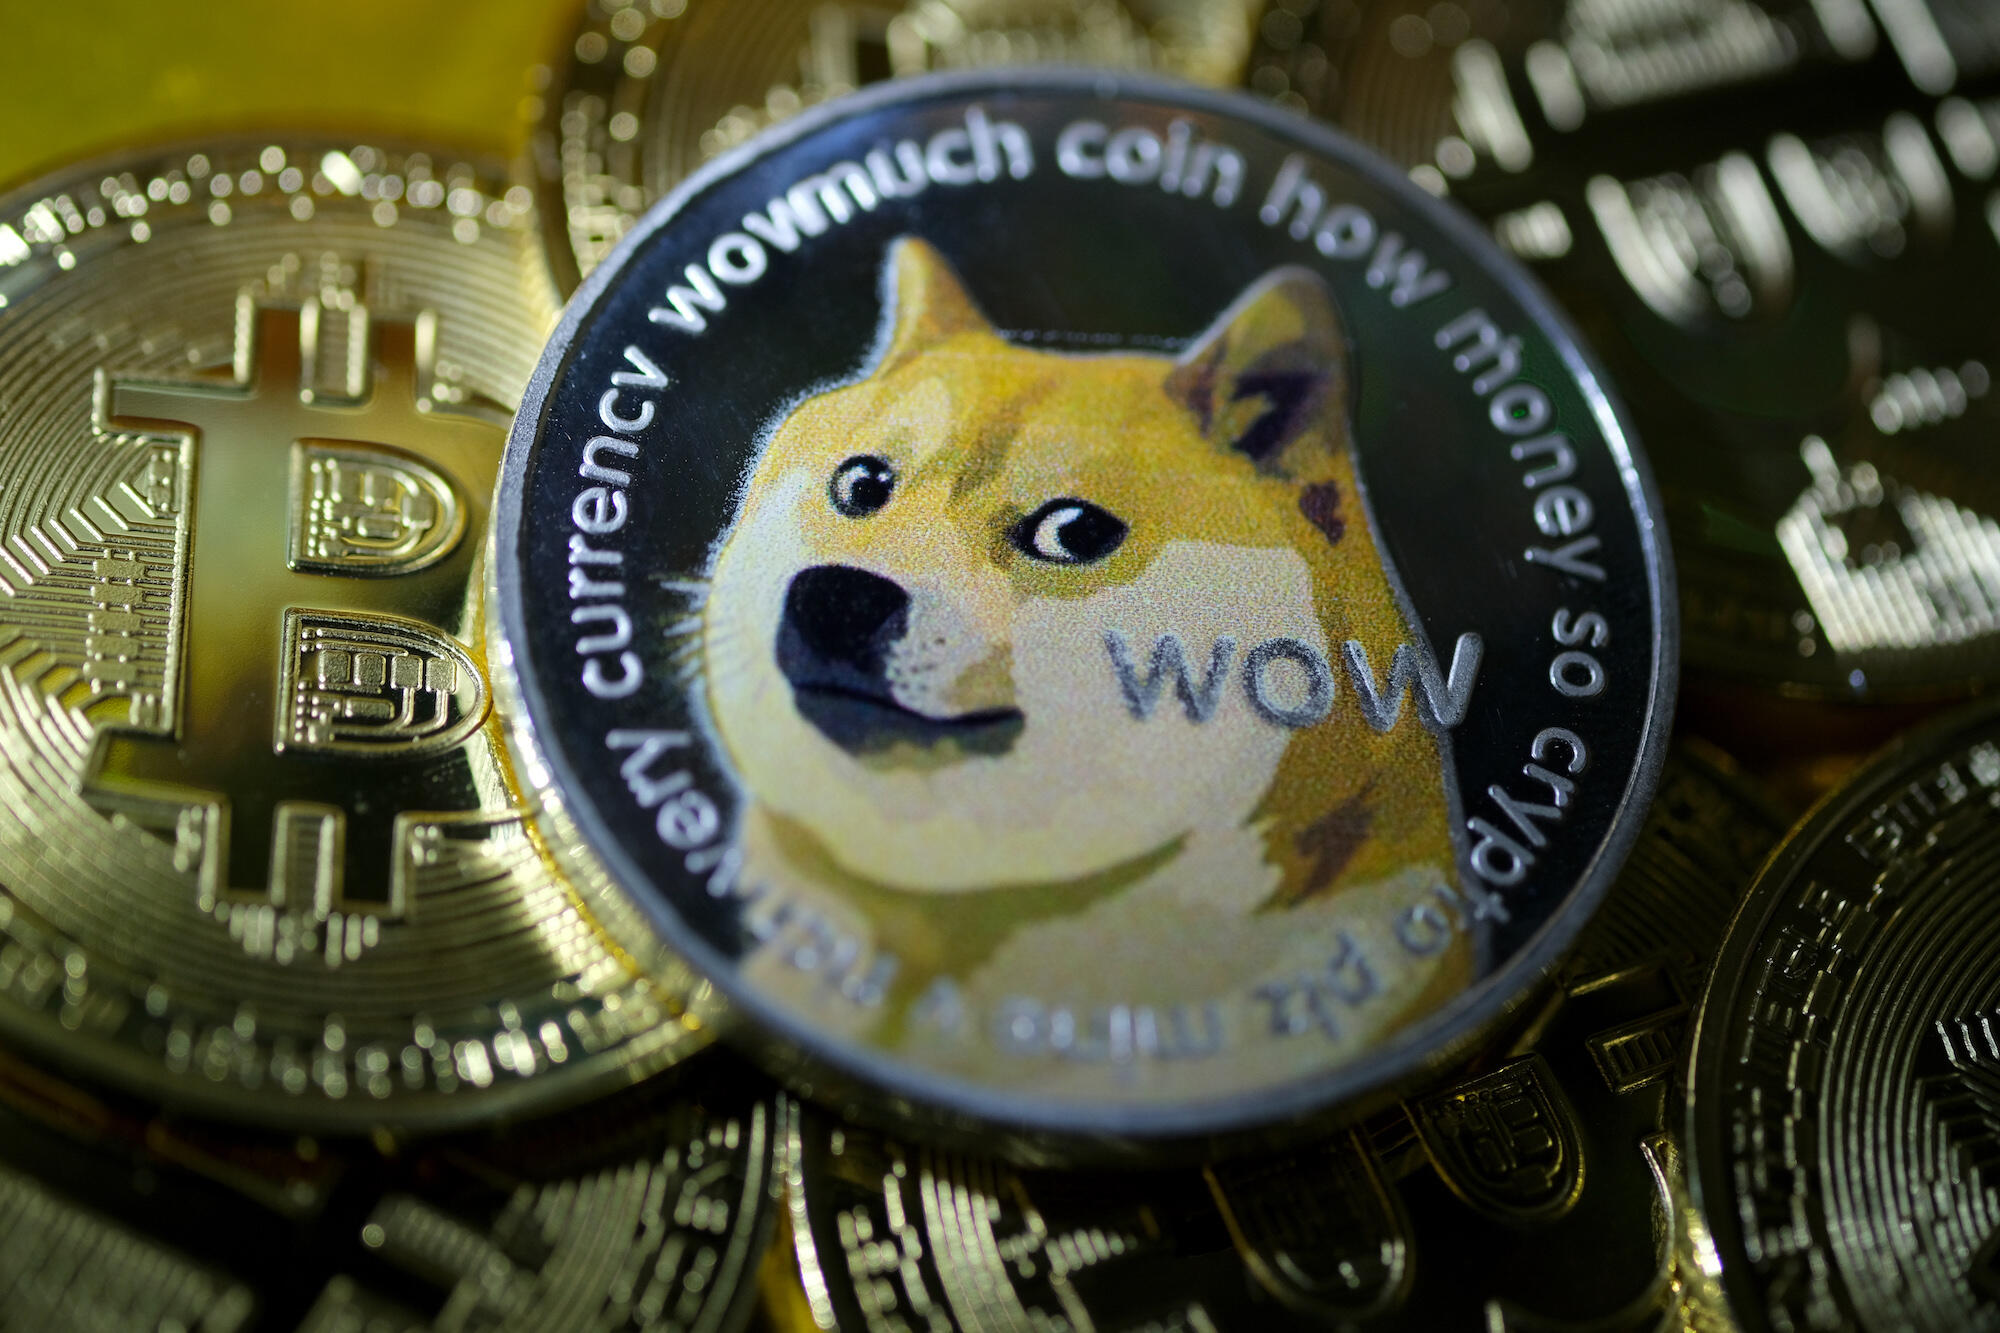 A coin with a dog saying